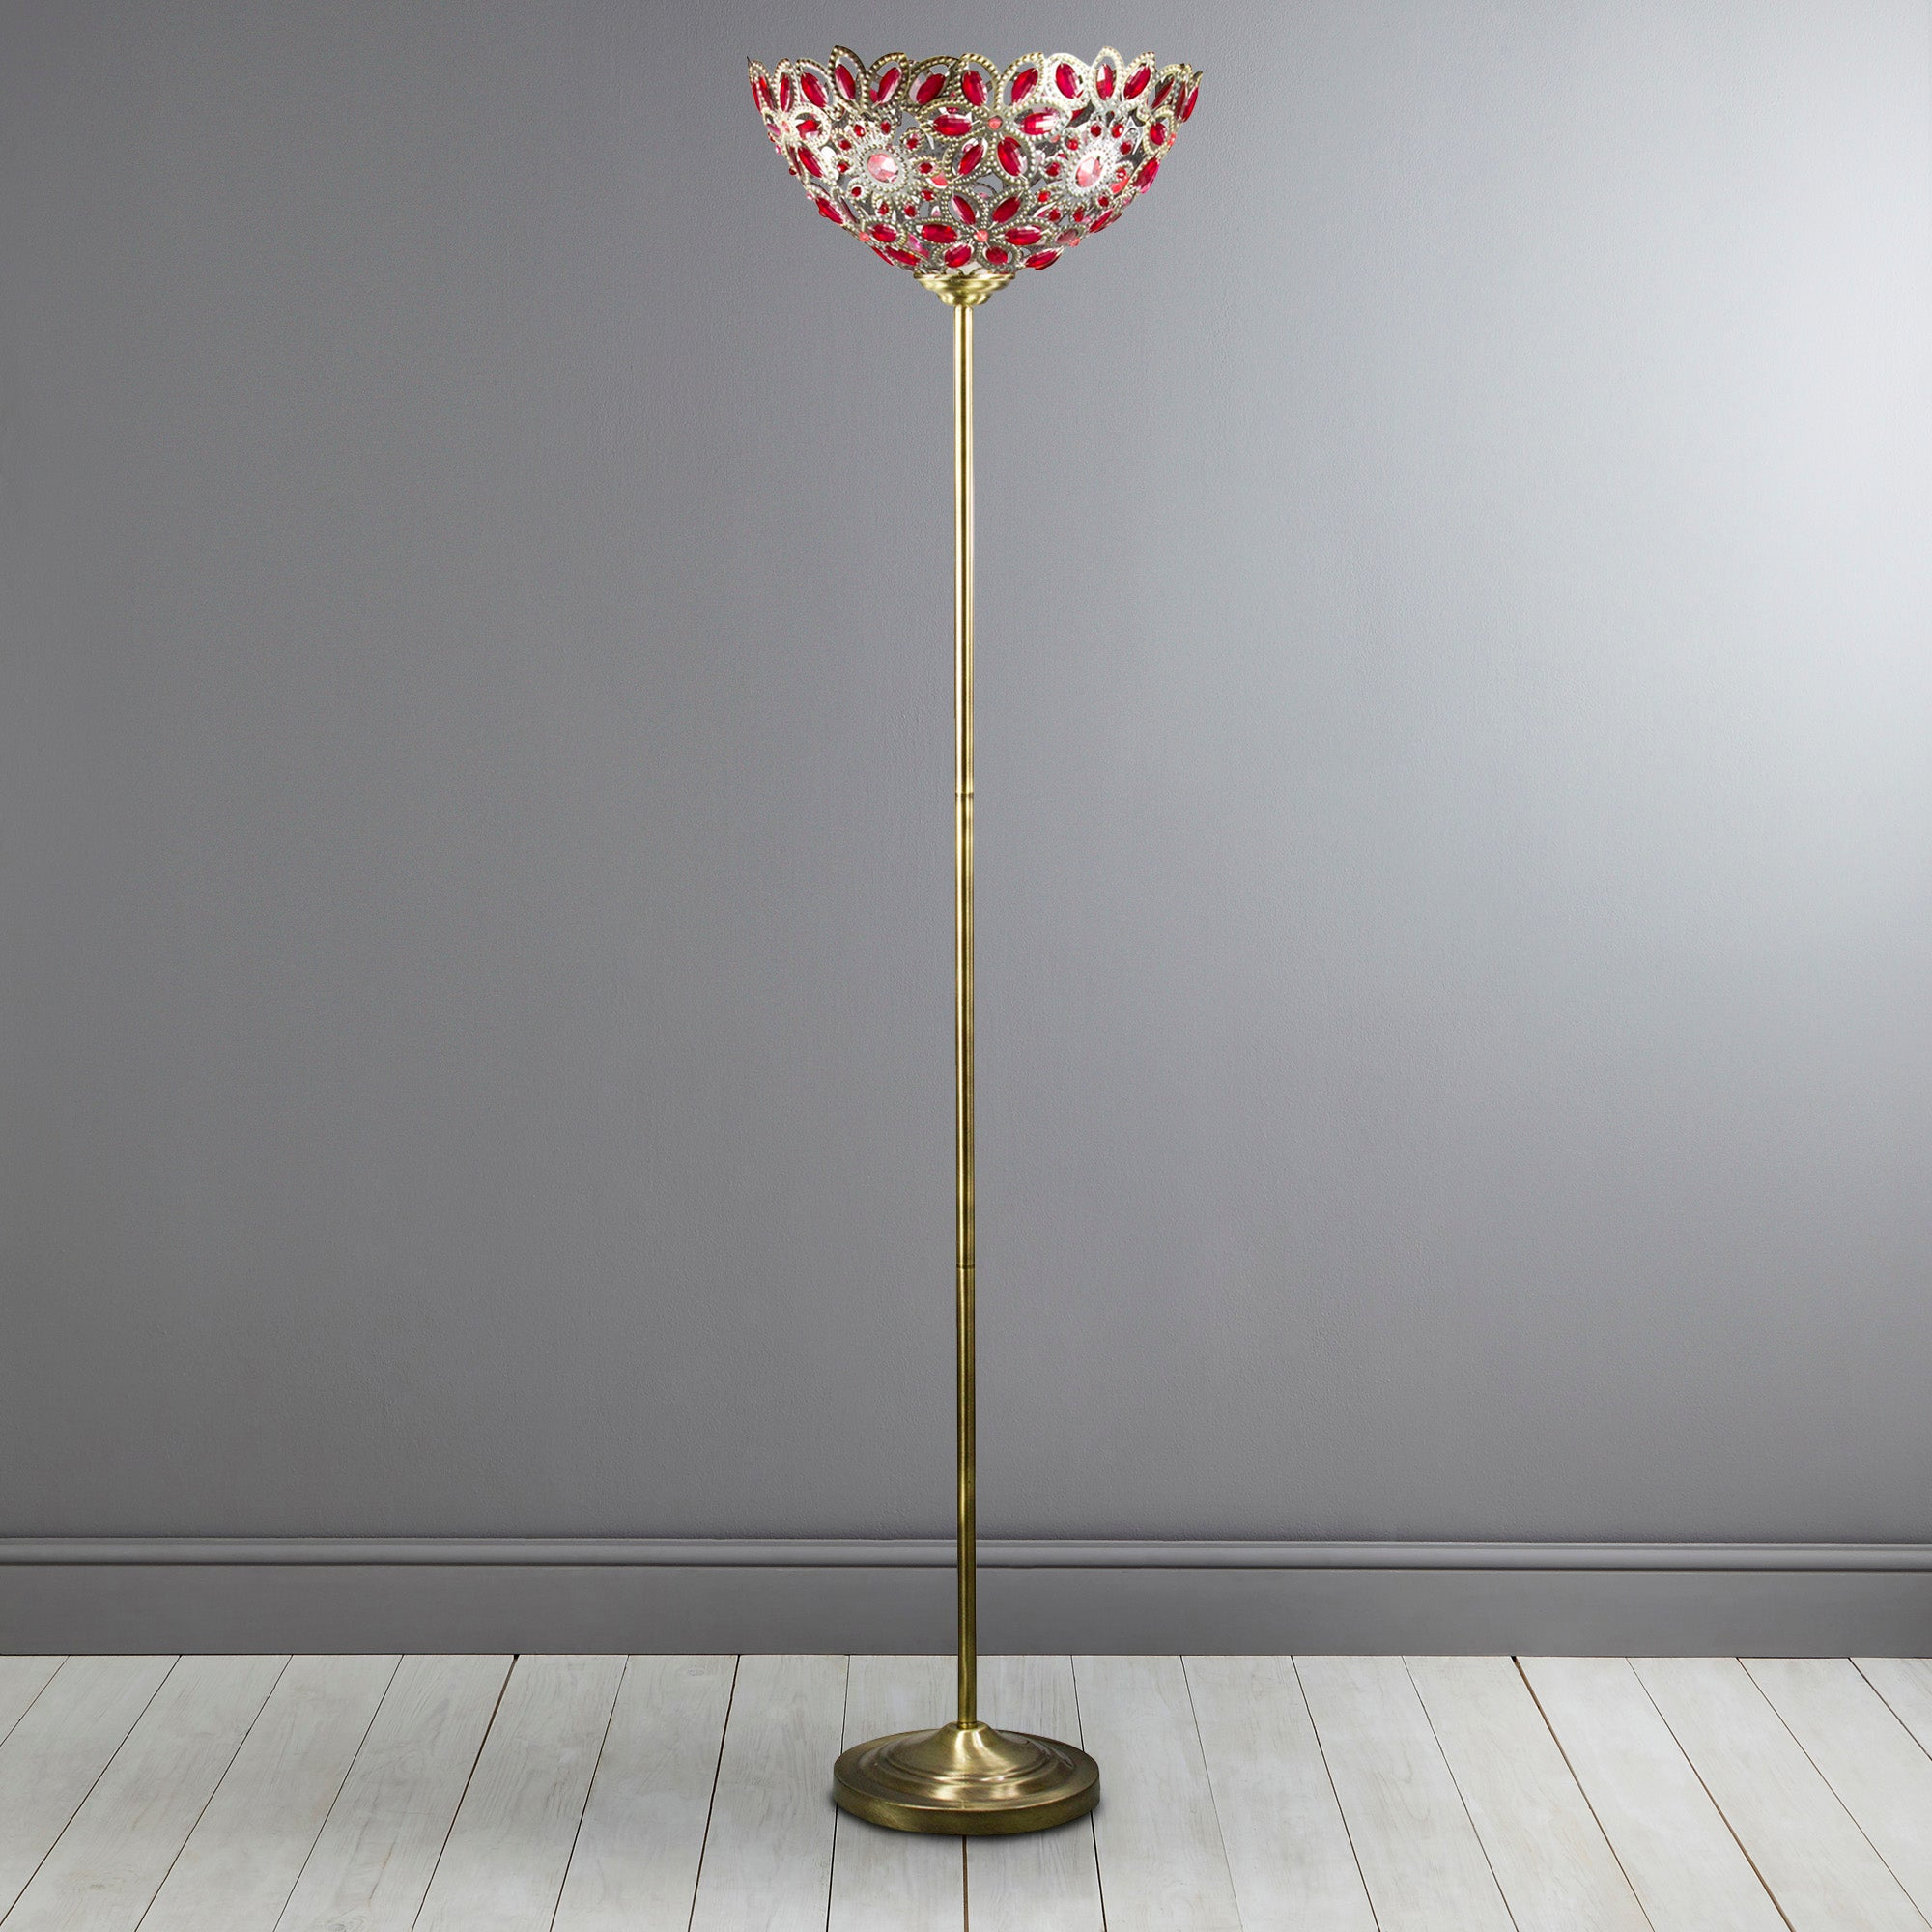 Moroccan Uplighter Floor Lamp